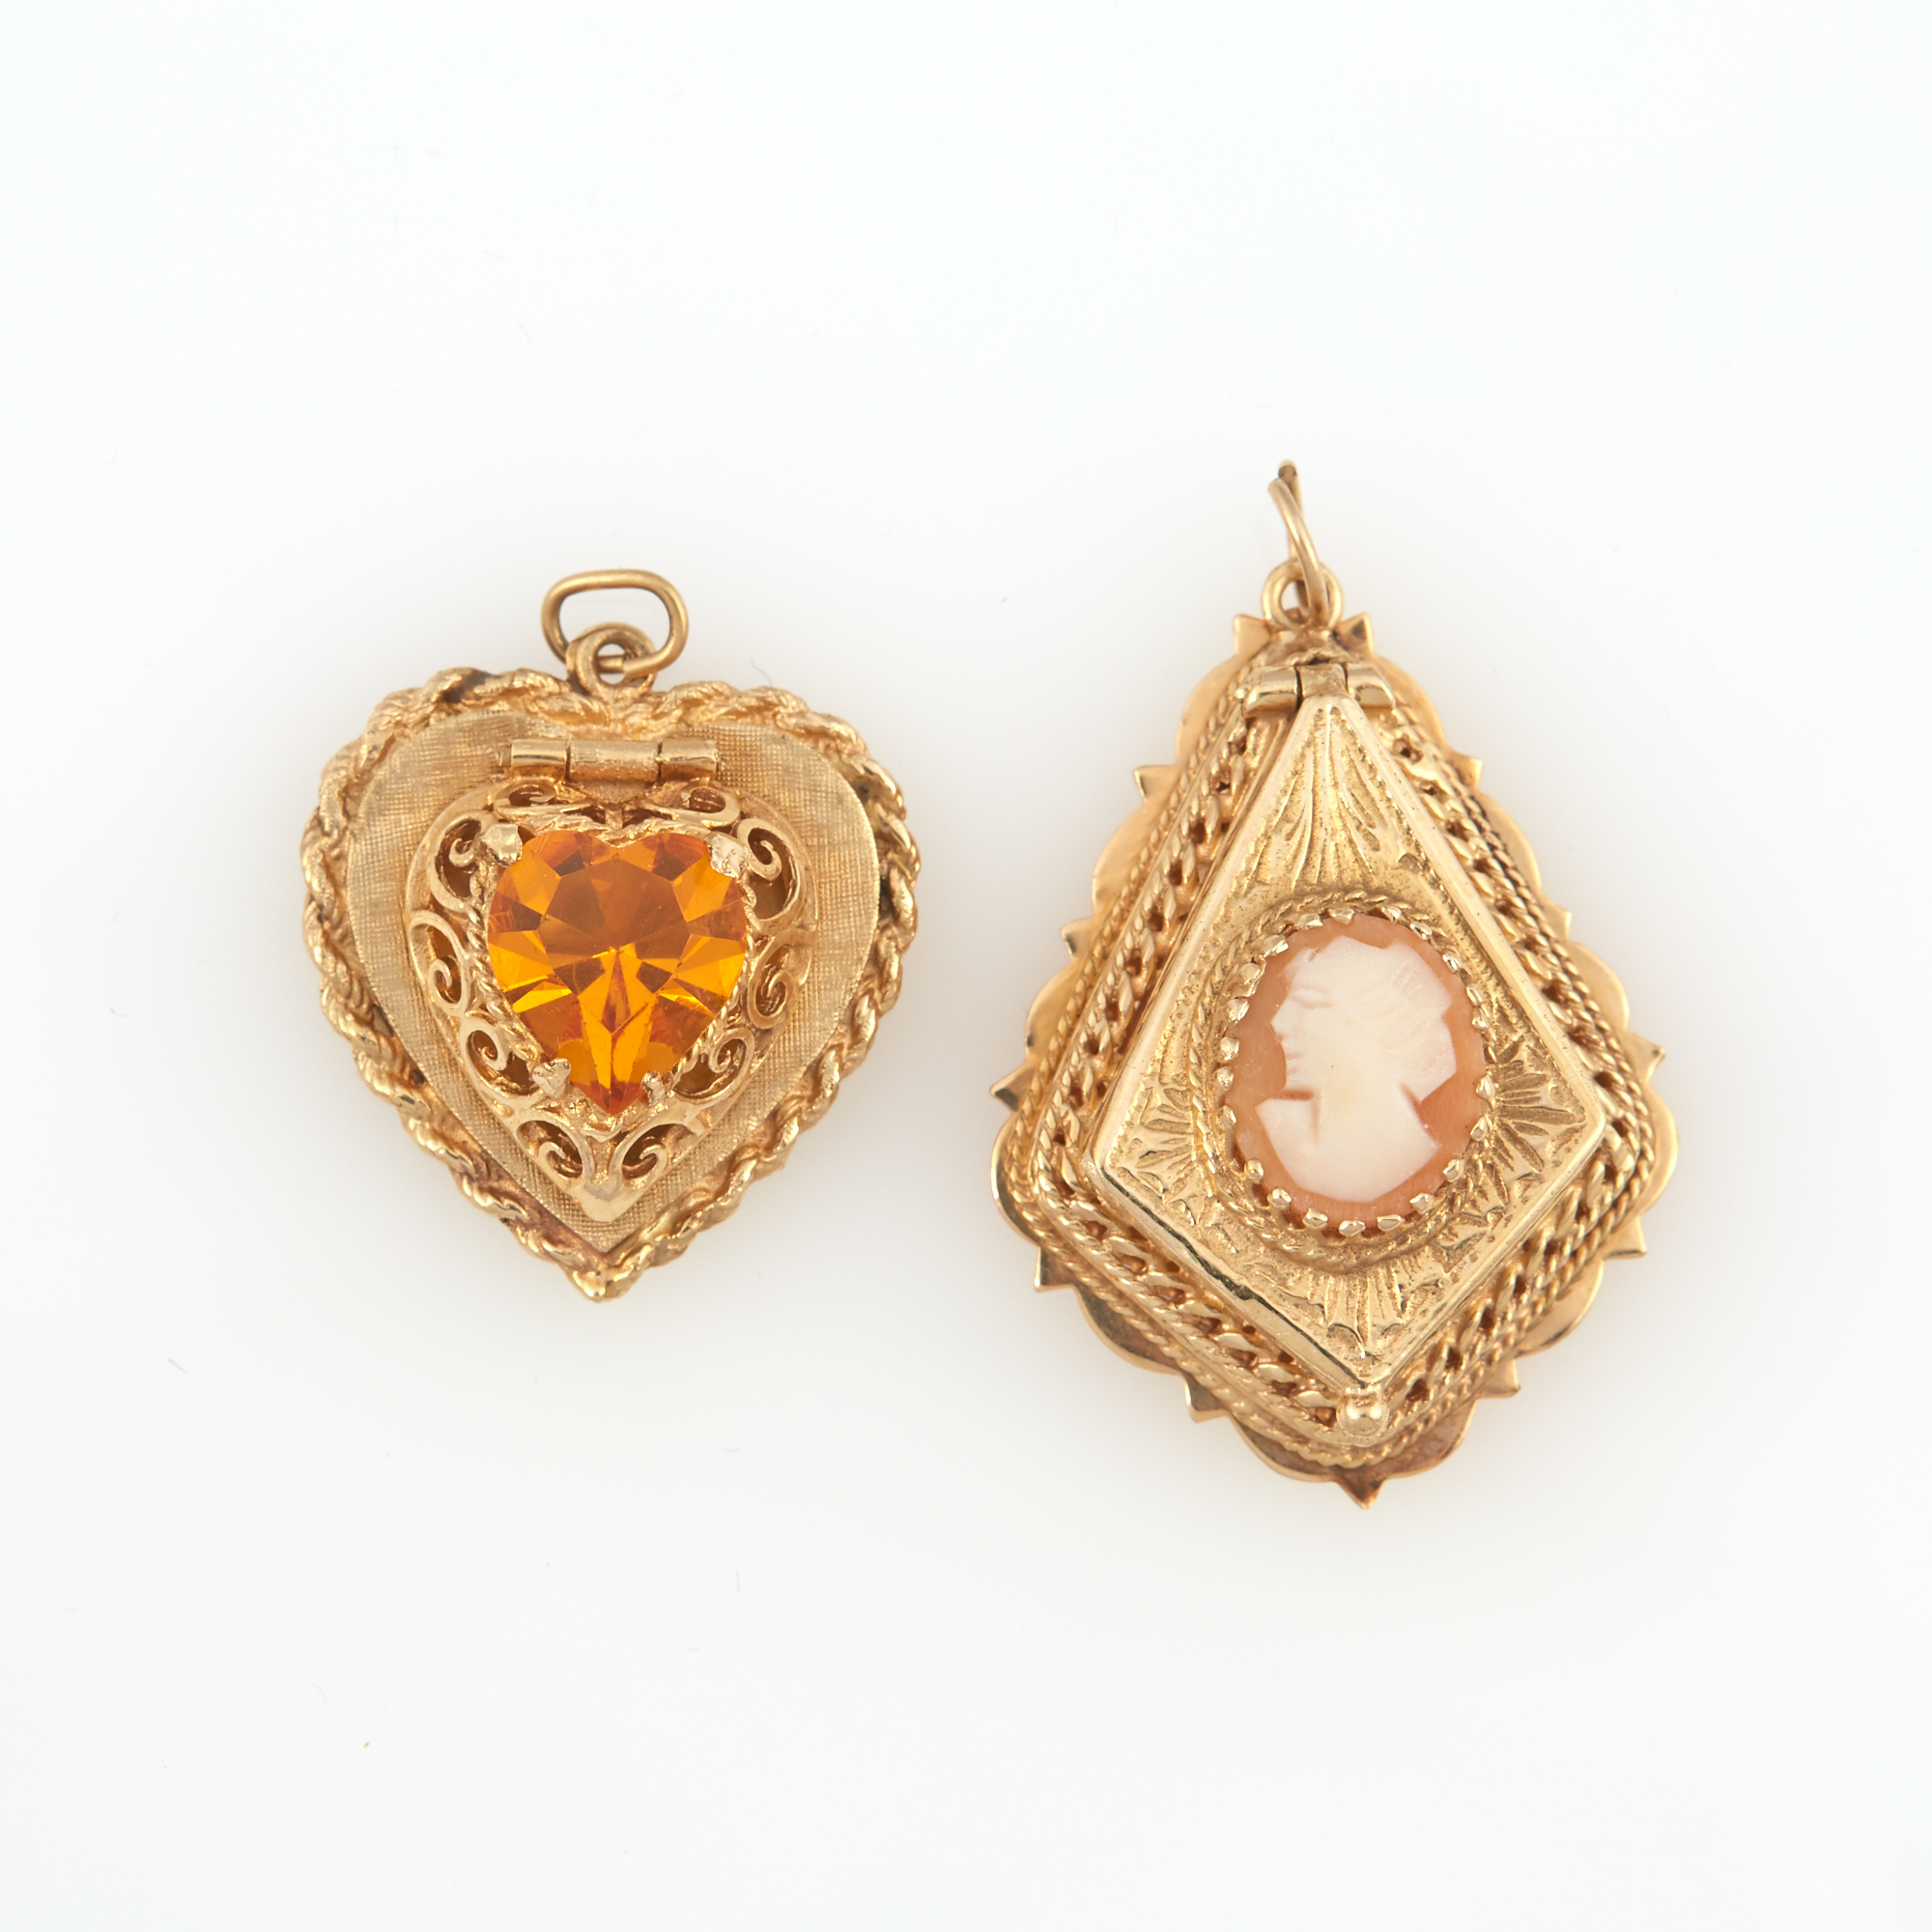 Lot image - Two Gold and Stone Pendants, 14K 11 dwt. all